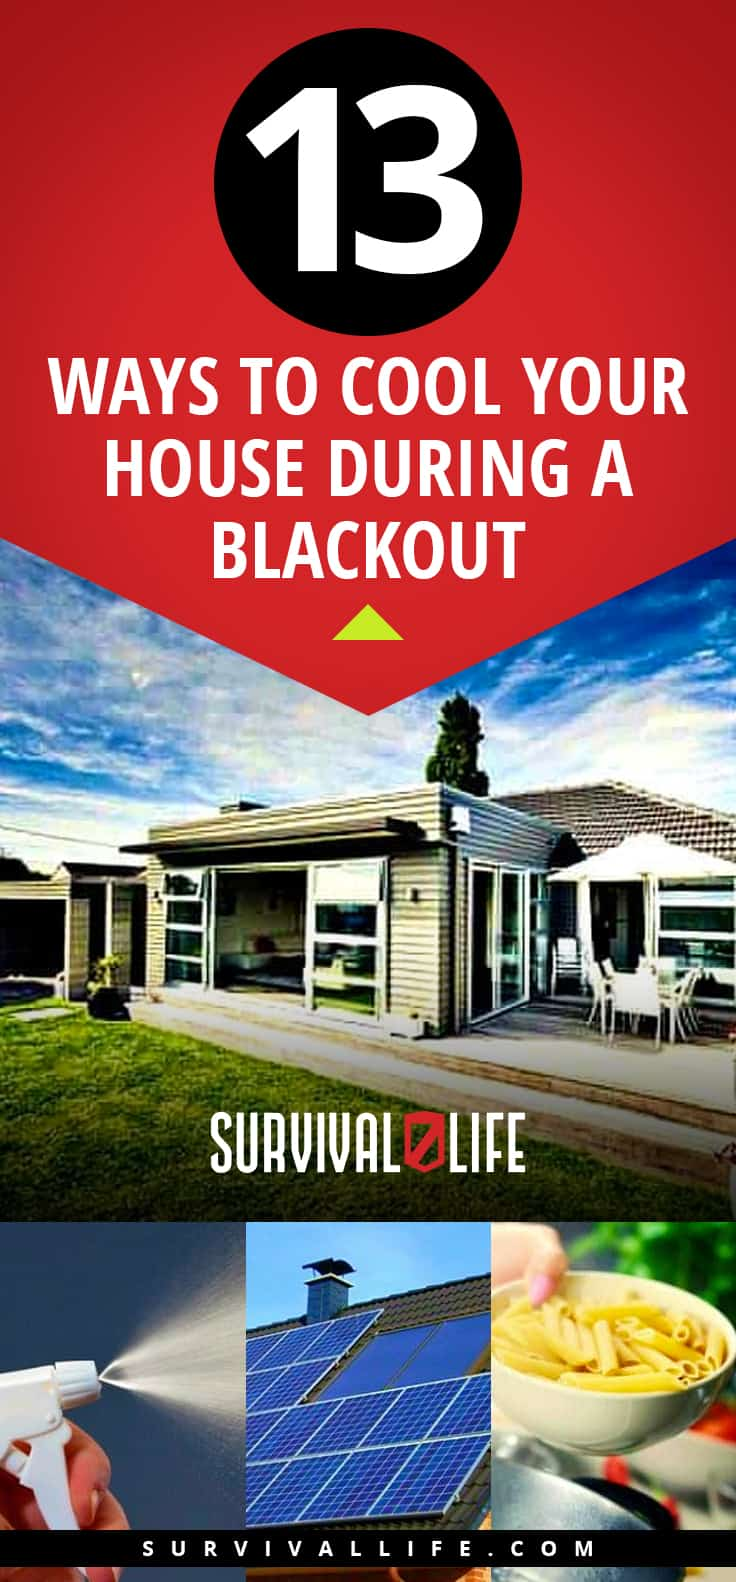 13 Ways To Cool Your House During A Blackout